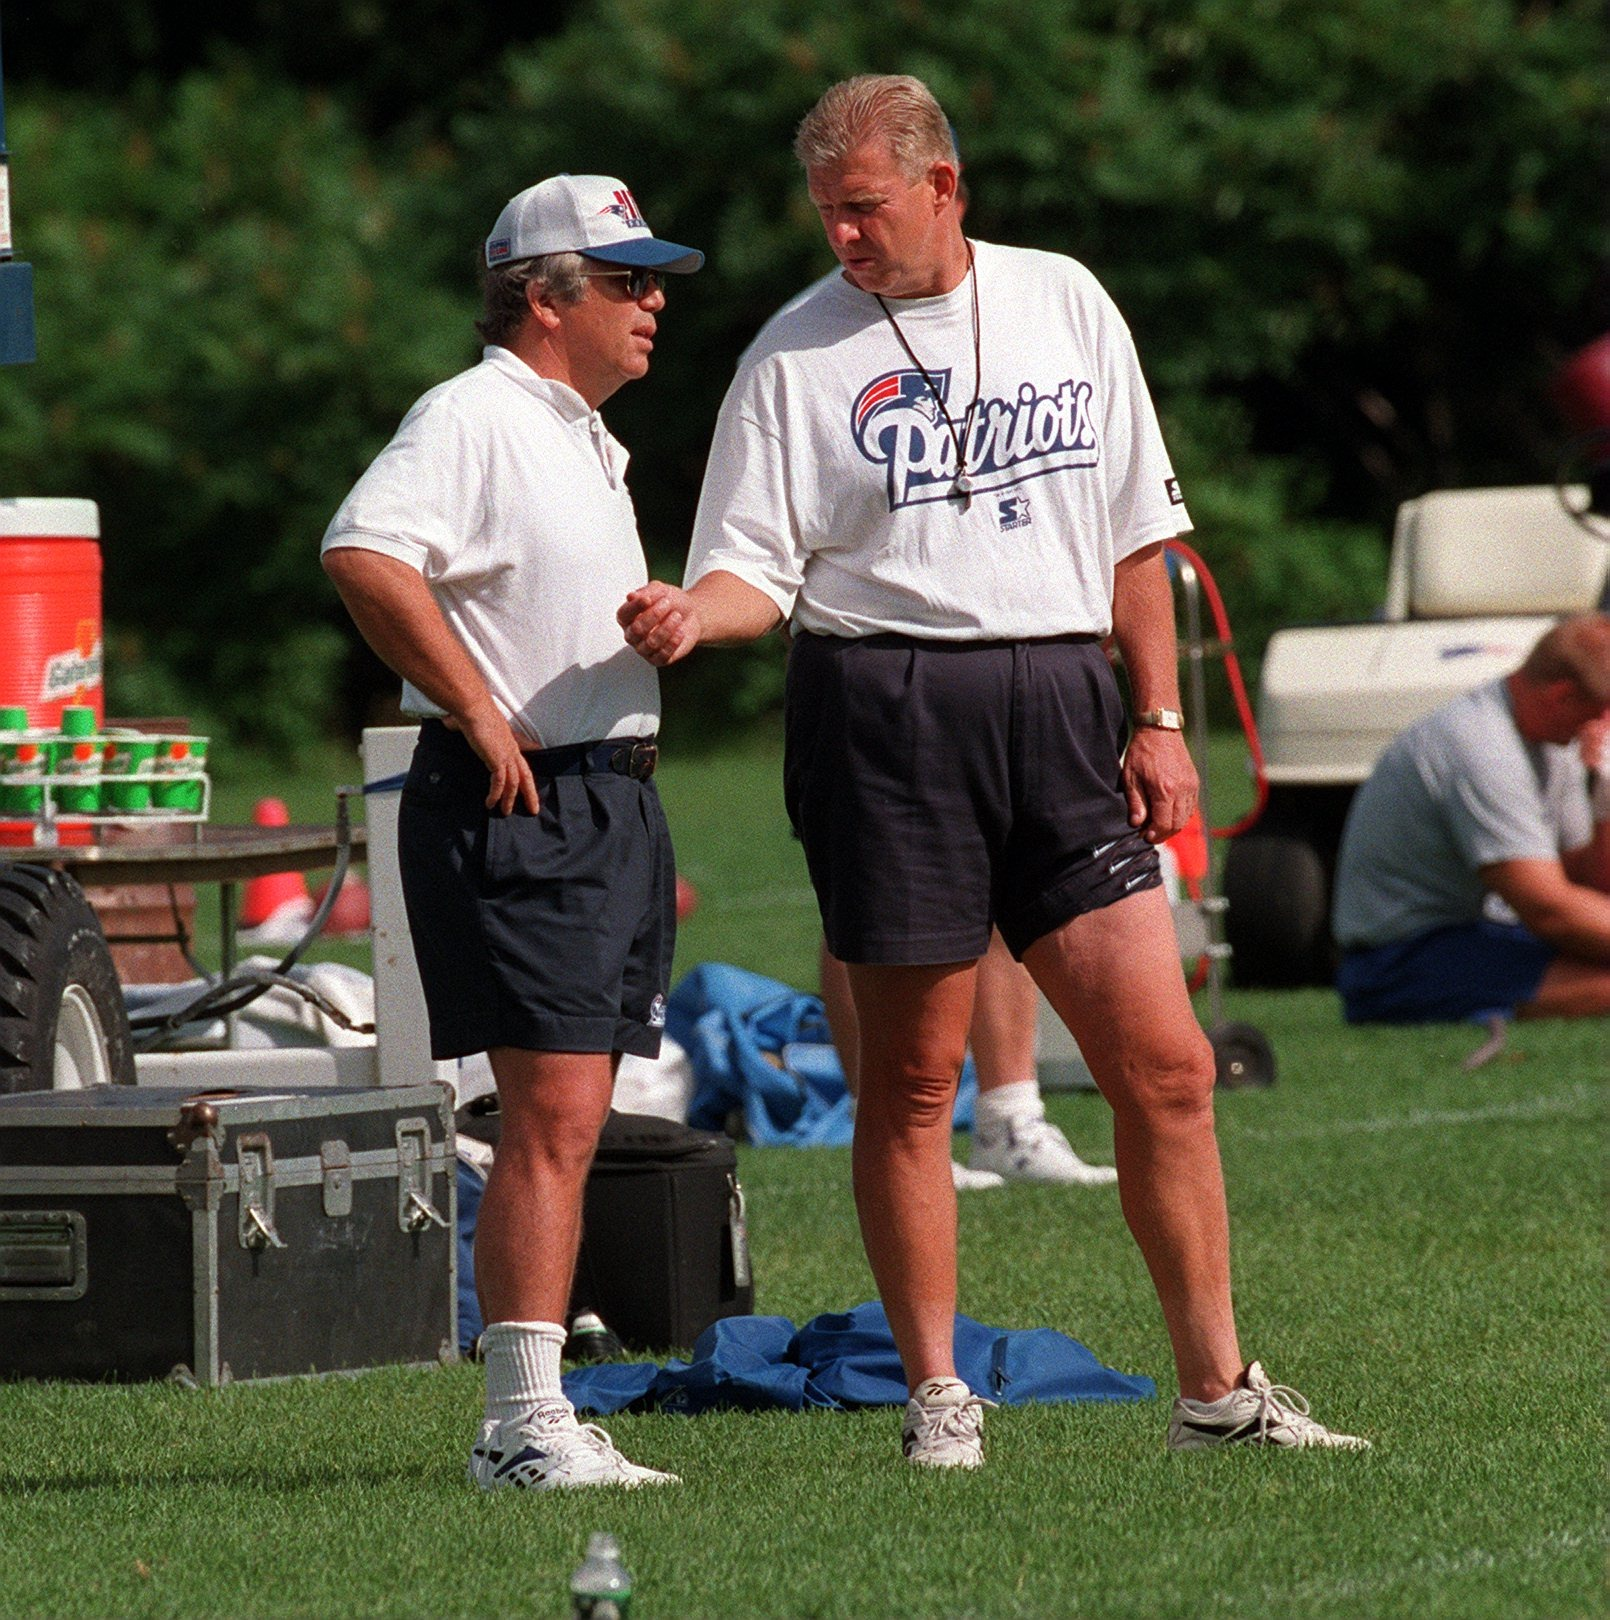 Patriots owner Robert Kraft and head coach Bill Parcells talk during a morning practice on July 22, 1996, in Smith Field, Rhode Island. Kraft had purchased the franchise from James Orthwein in 1994, but Parcells bristled at the new ways of doing things, which diluted the sweeping powers he'd been given under the previous owner. Irreconcilable differences with Kraft would prompt Parcells to leave for the Jets in early 1997 despite having guided New England to Super Bowl XXX. (Tom Landers, Boston Globe, Getty)